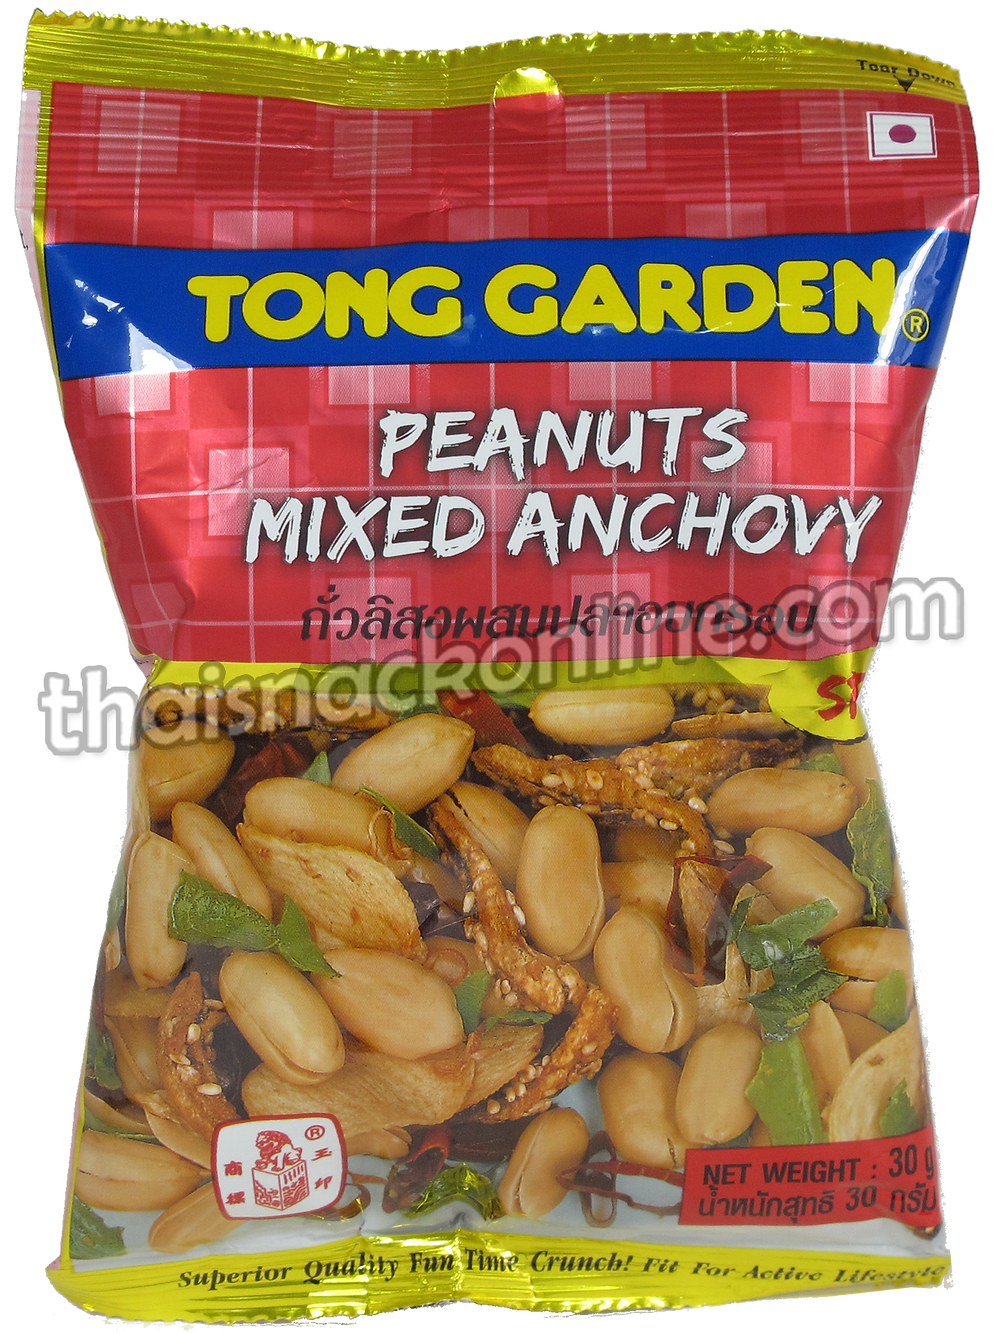 Tong Garden - Peanuts Mixed Anchovy Spicy (35g)